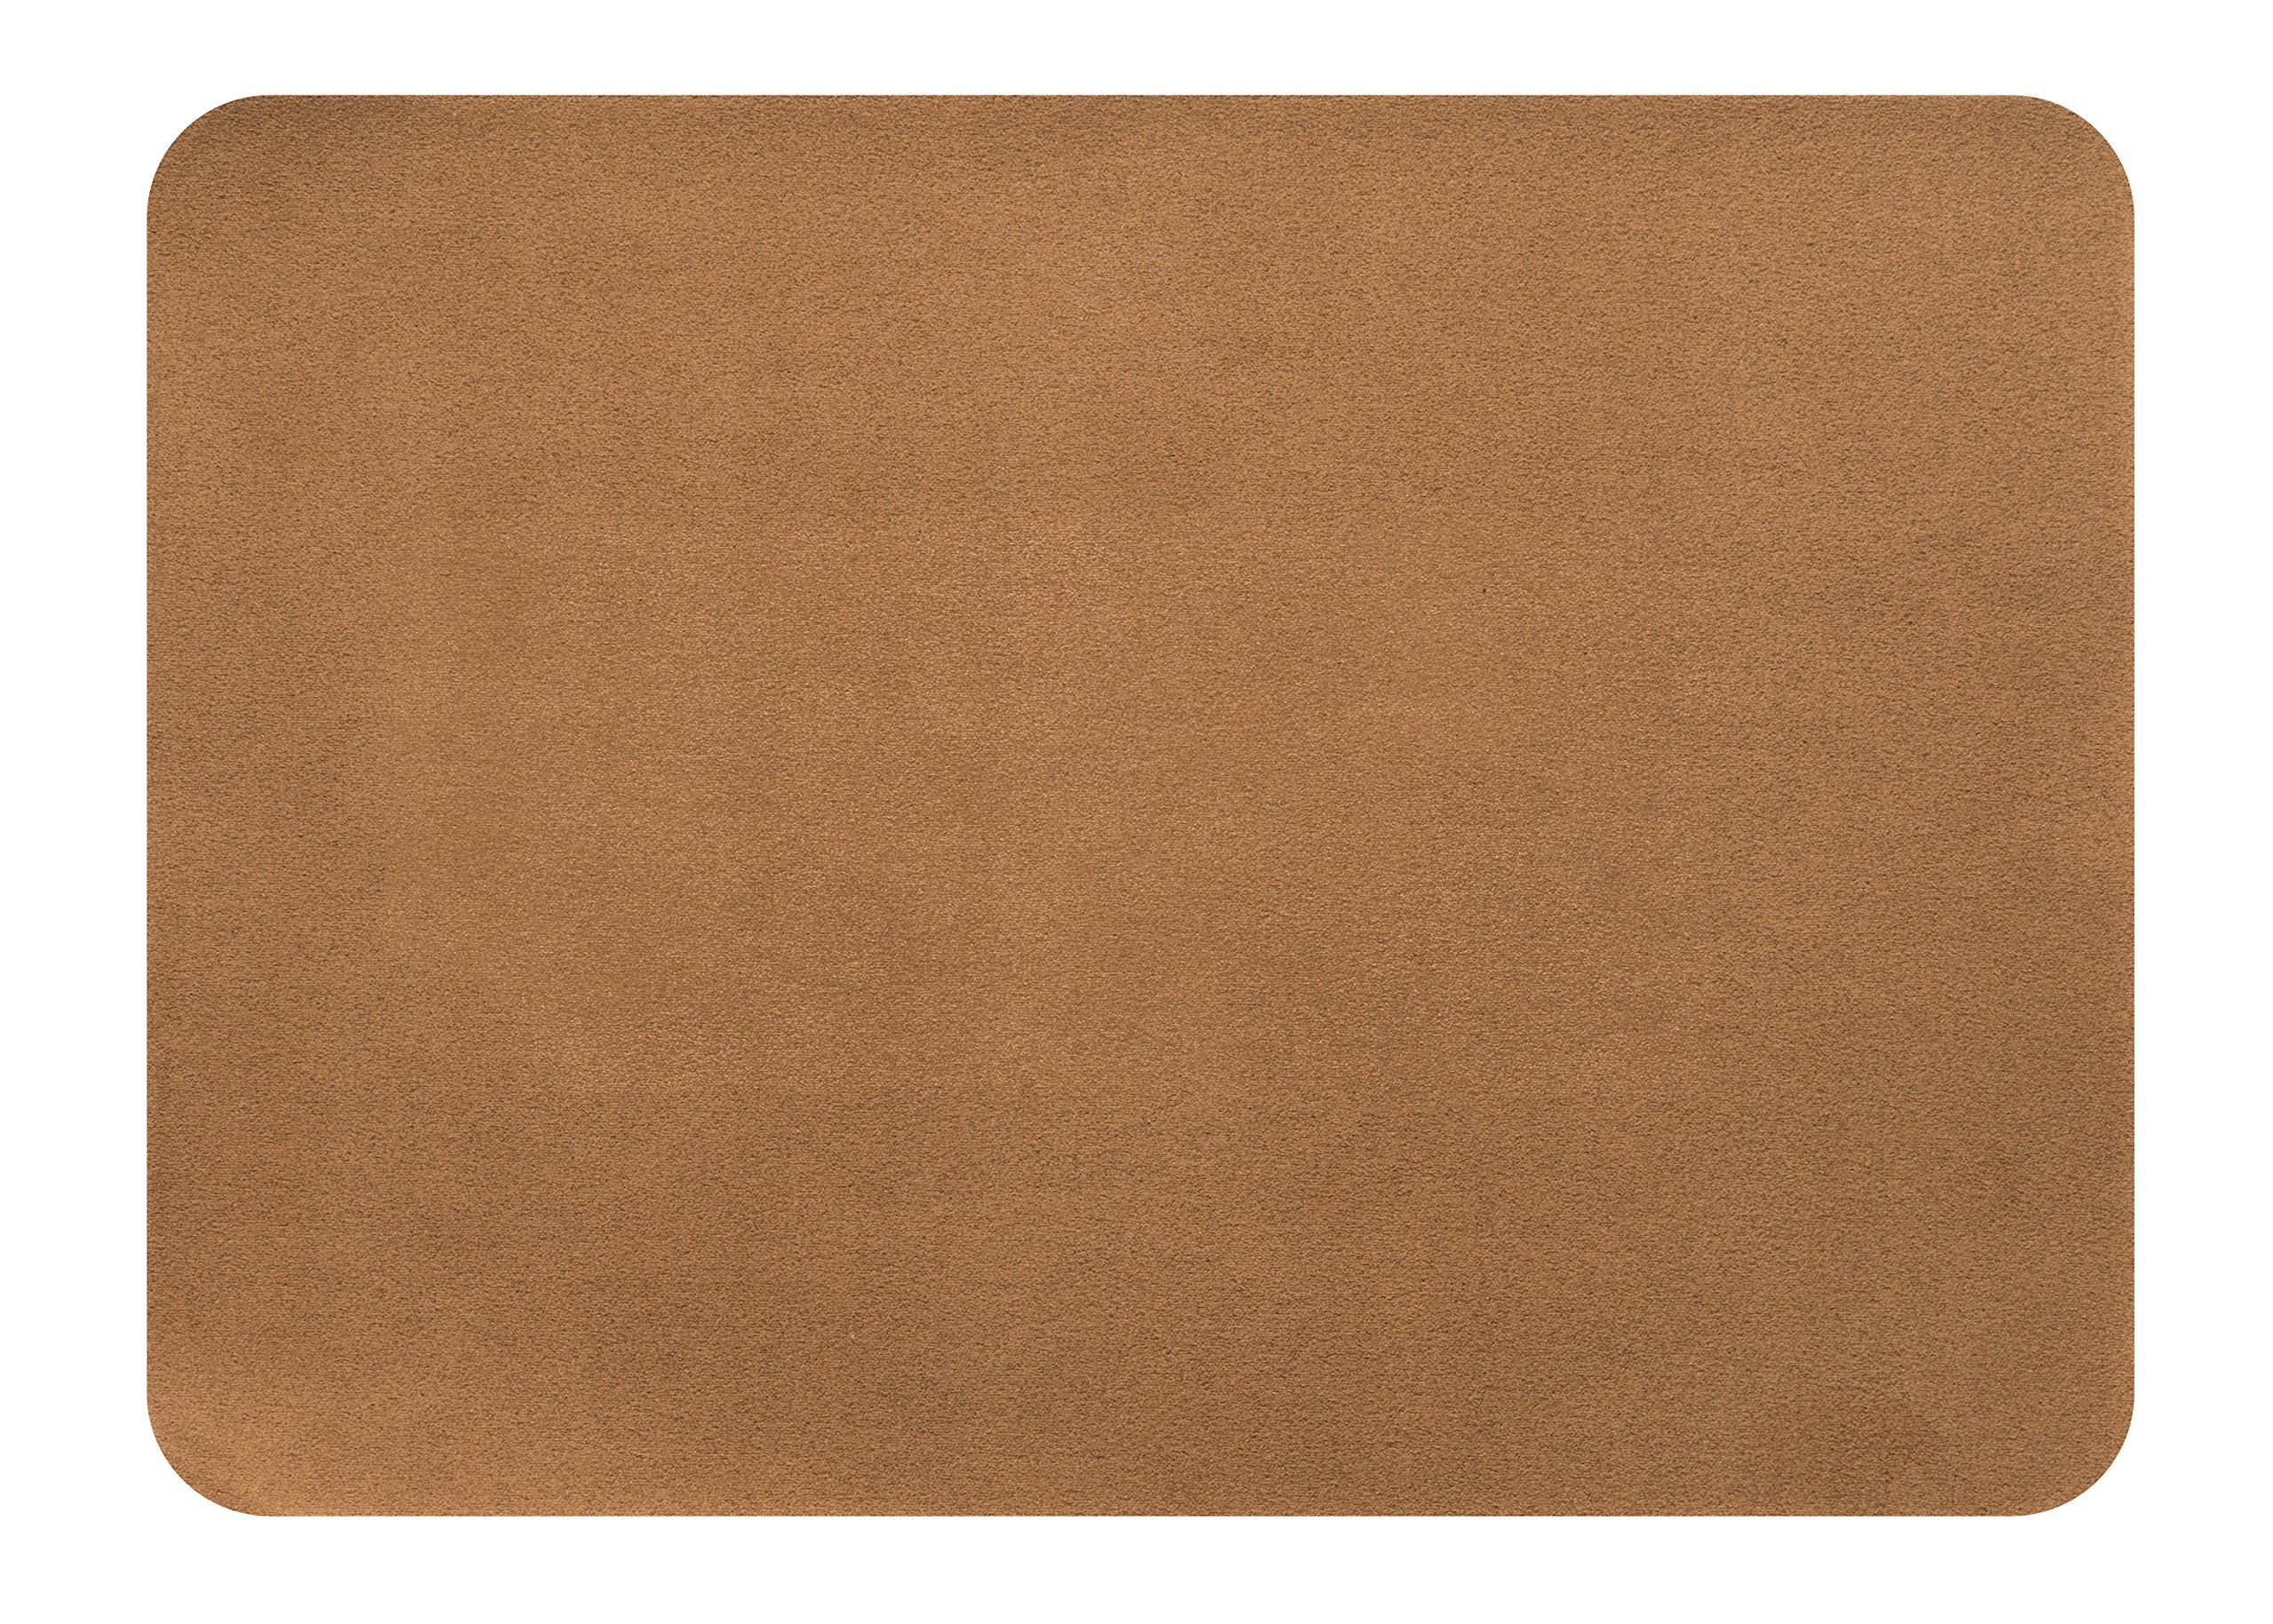 MastaPlasta Self-Adhesive Patch for Leather and Vinyl Repair, XL Suede, Tan - 8 x 11 Inch - Multiple Colors Available